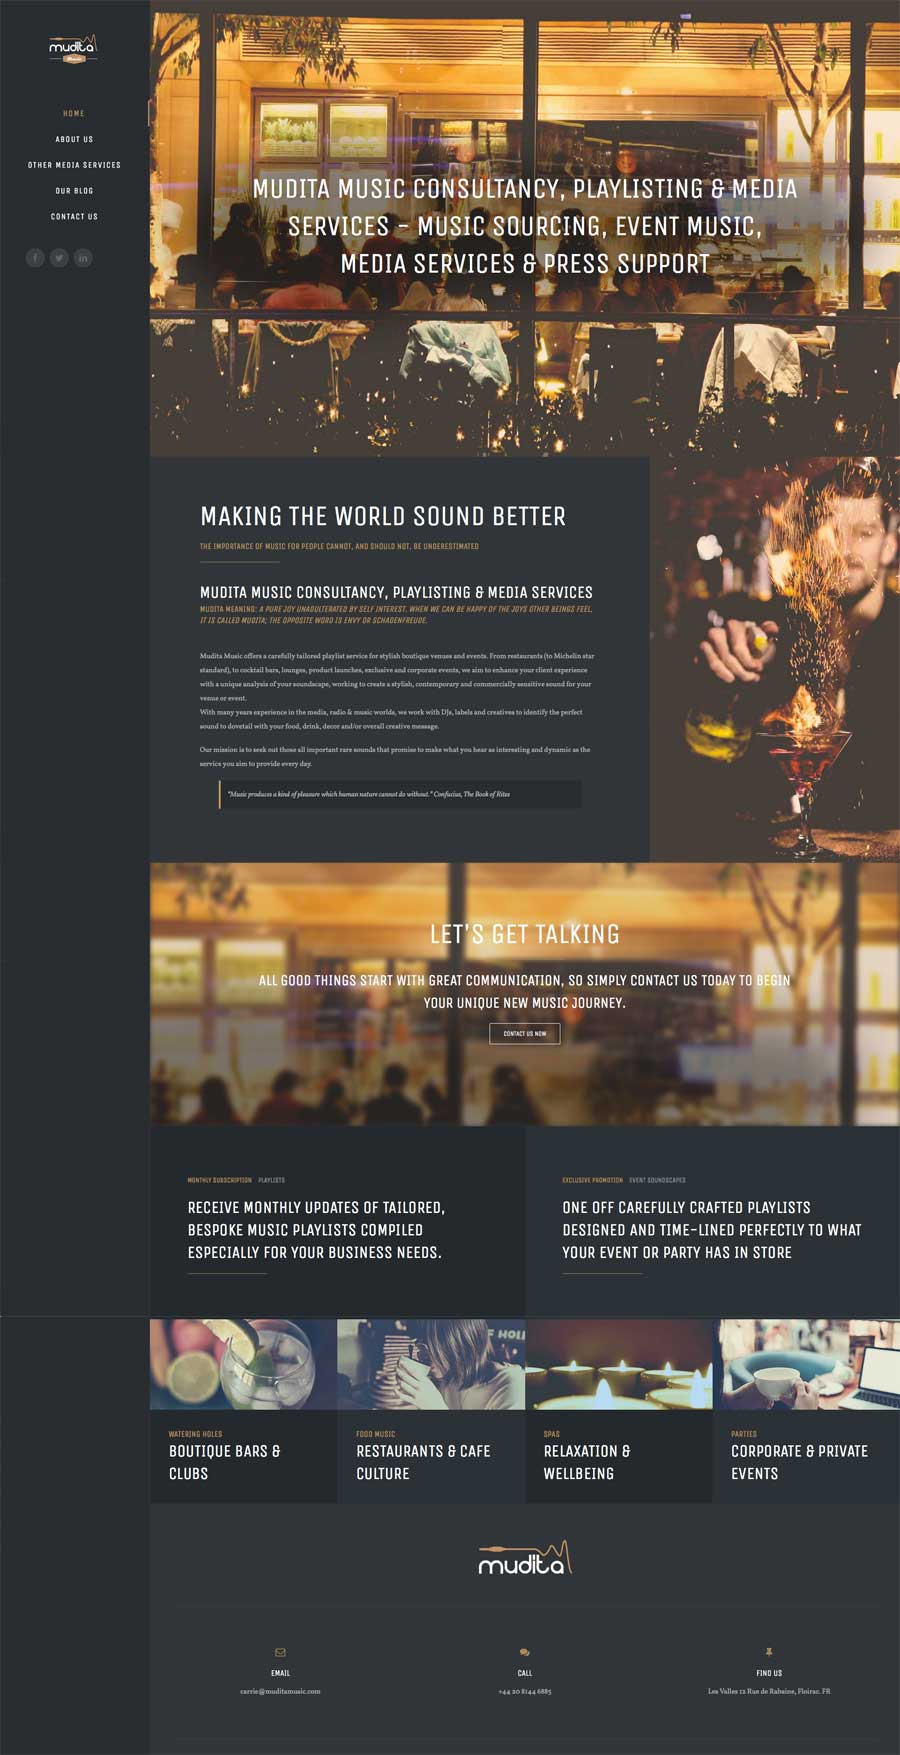 Great Website Design Ideas ideas for designing a web page with antique and retro web design web design ideas Mudita Music Web Design Marbella Disenoideas